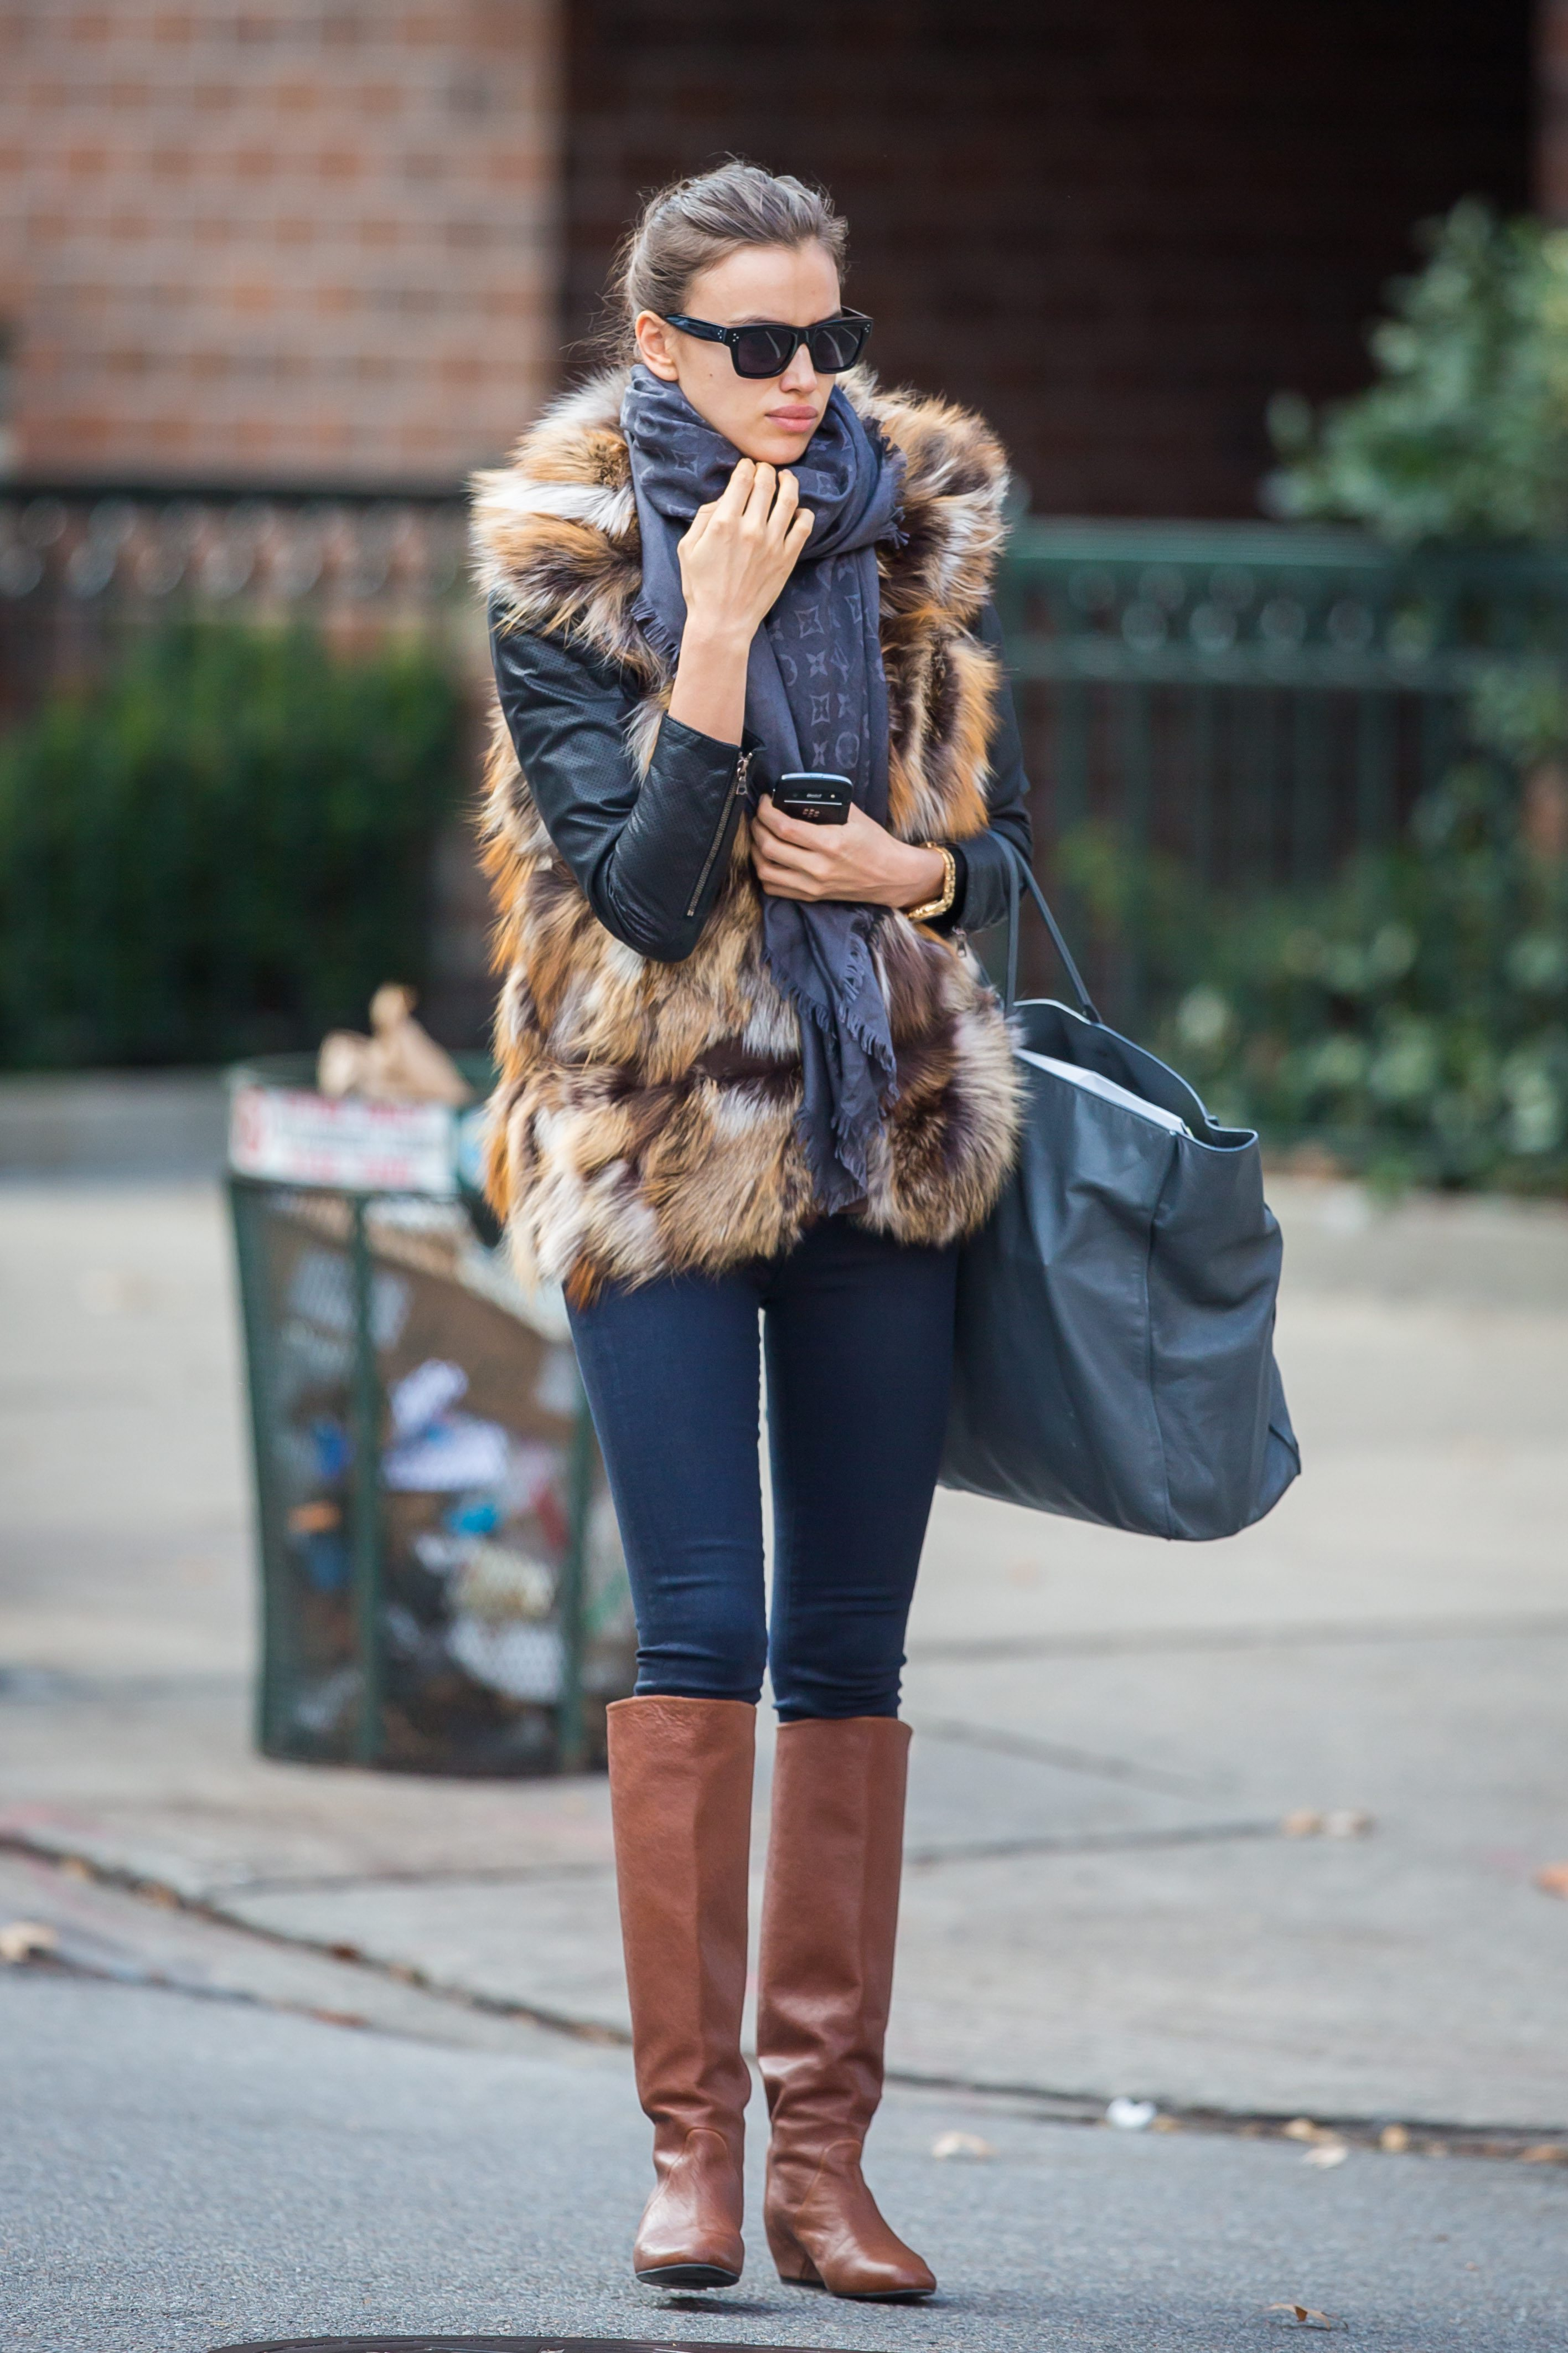 Style Watch Celebrity Streetstyle 6 Fab Fashion Fix